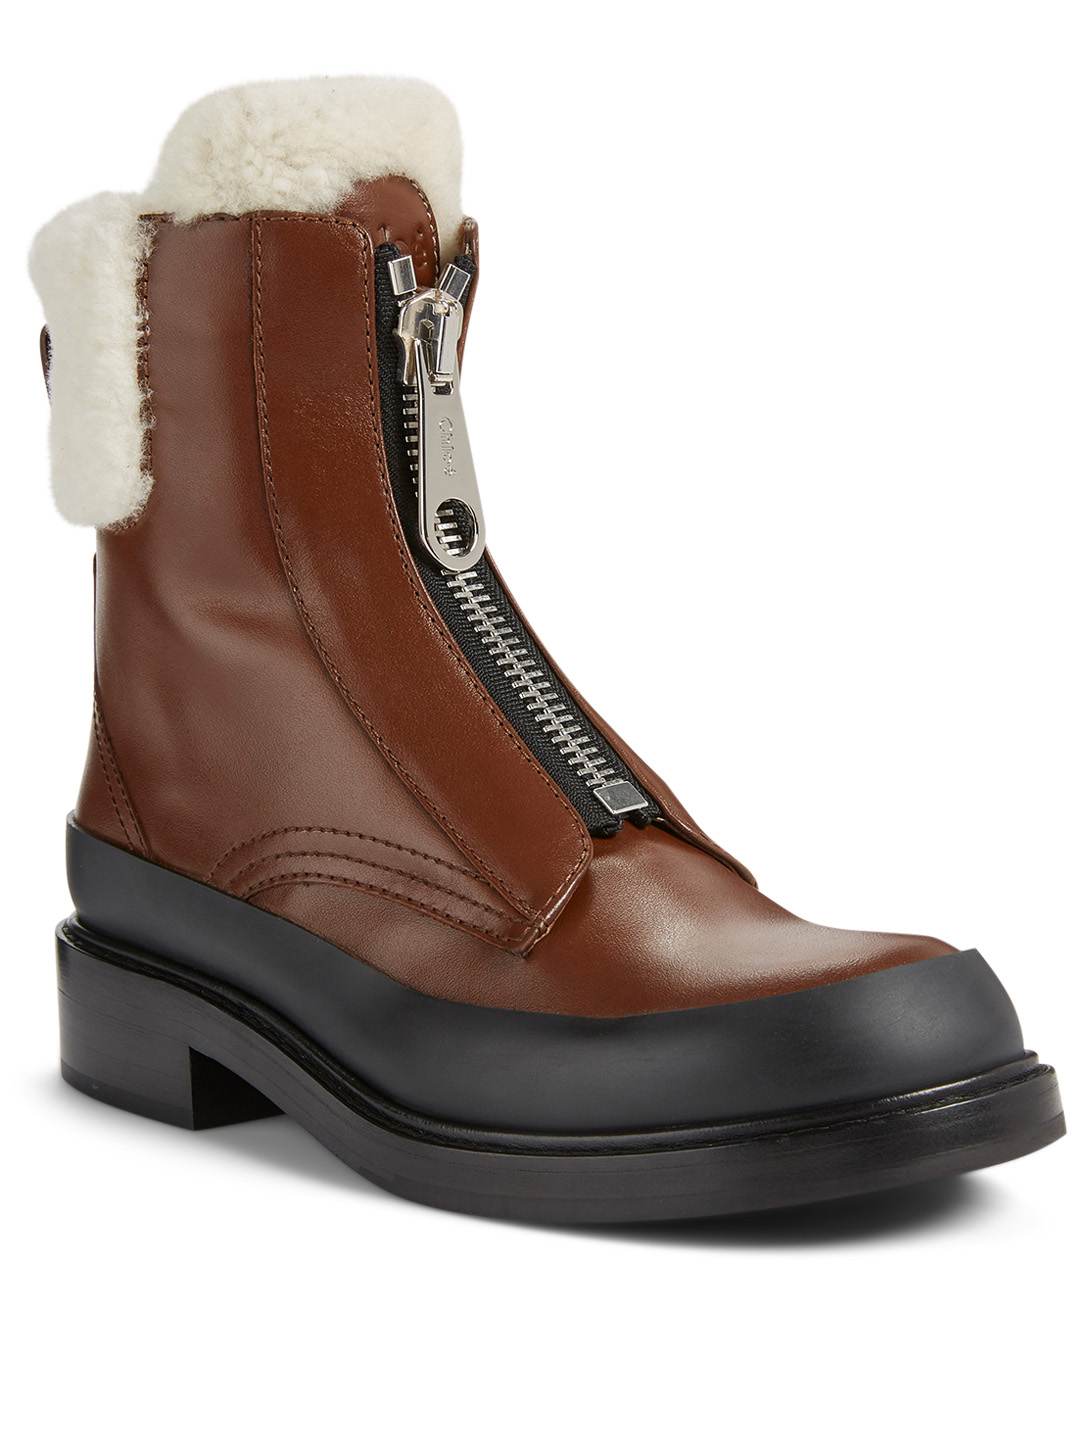 CHLOÉ Roy Leather Zip-Up Ankle Boots With Shearling Women's Brown